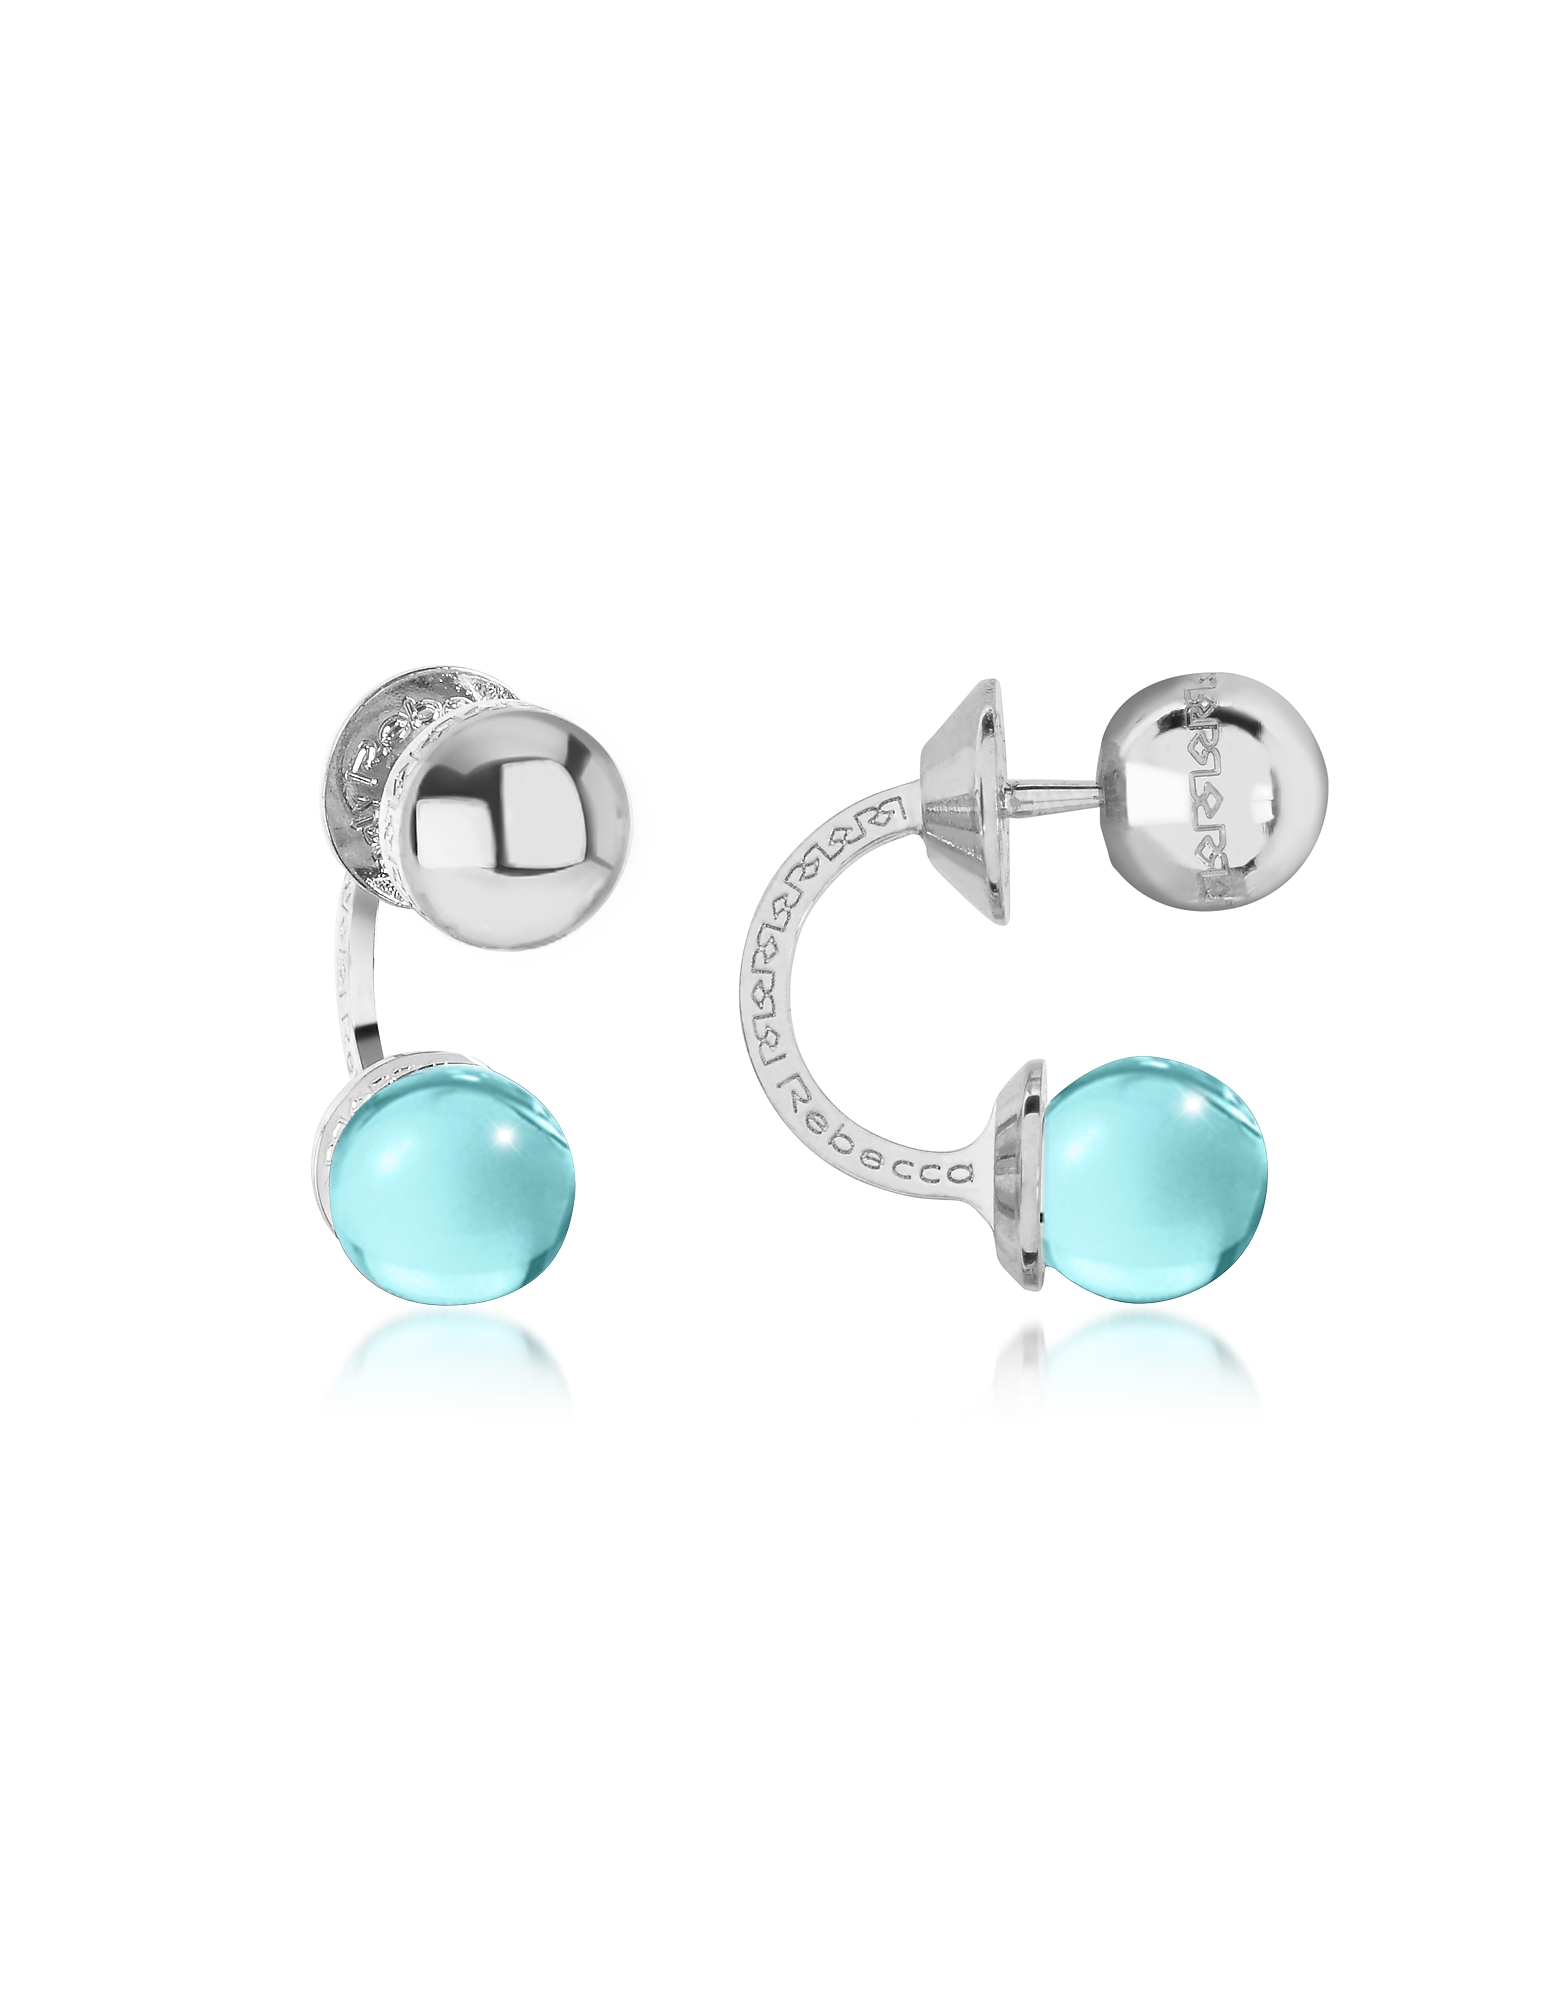 Boulevard Stone Rhodium Over Bronze Double Ball Drop Earrings w/Turquoise Hydrothermal Stone